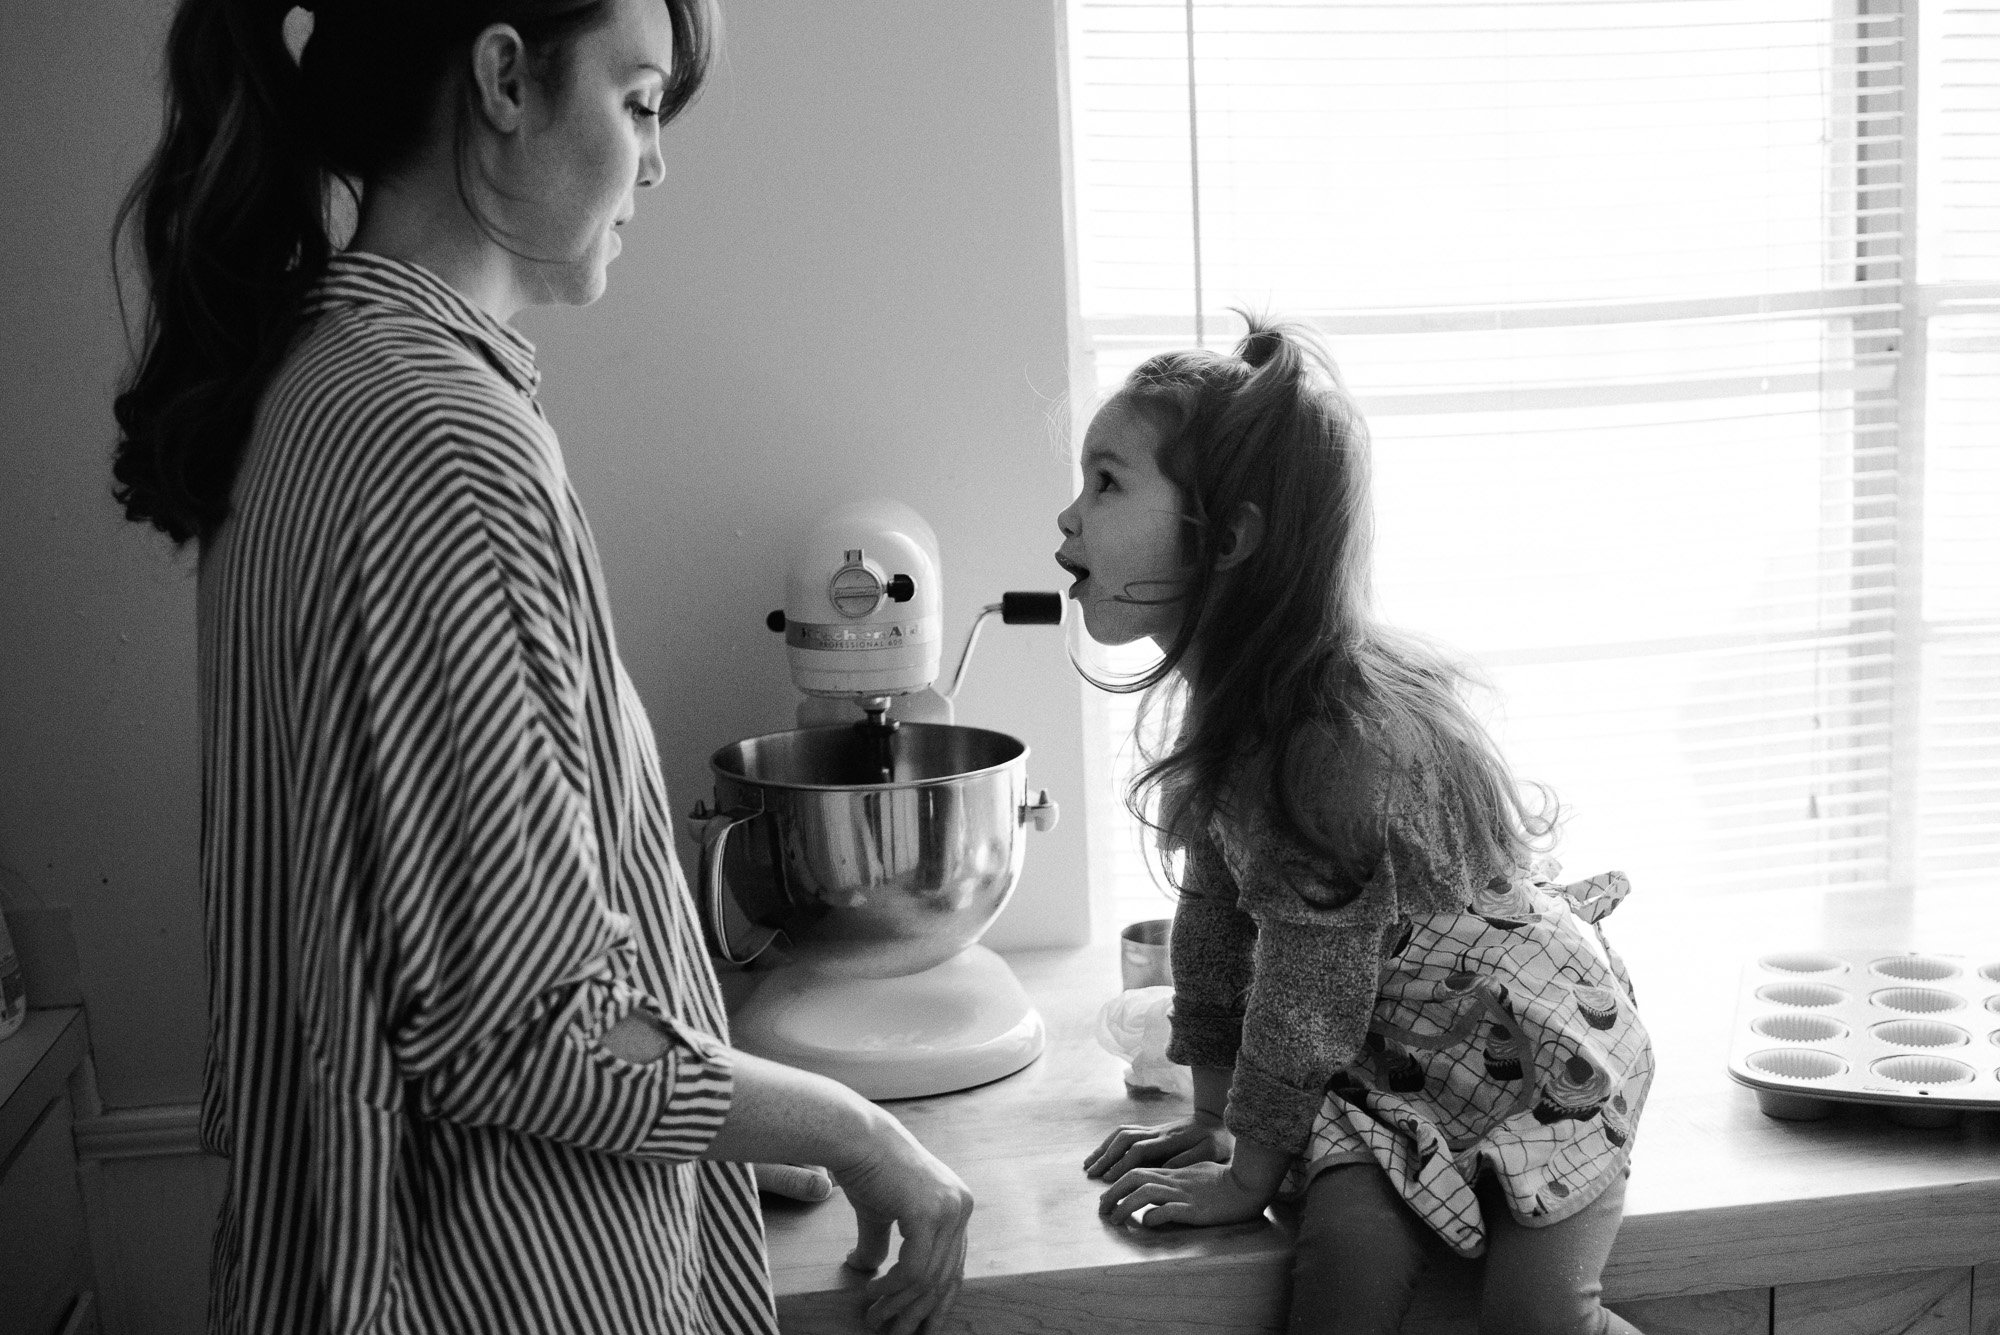 black and white candid shot of a mother and daughter baking